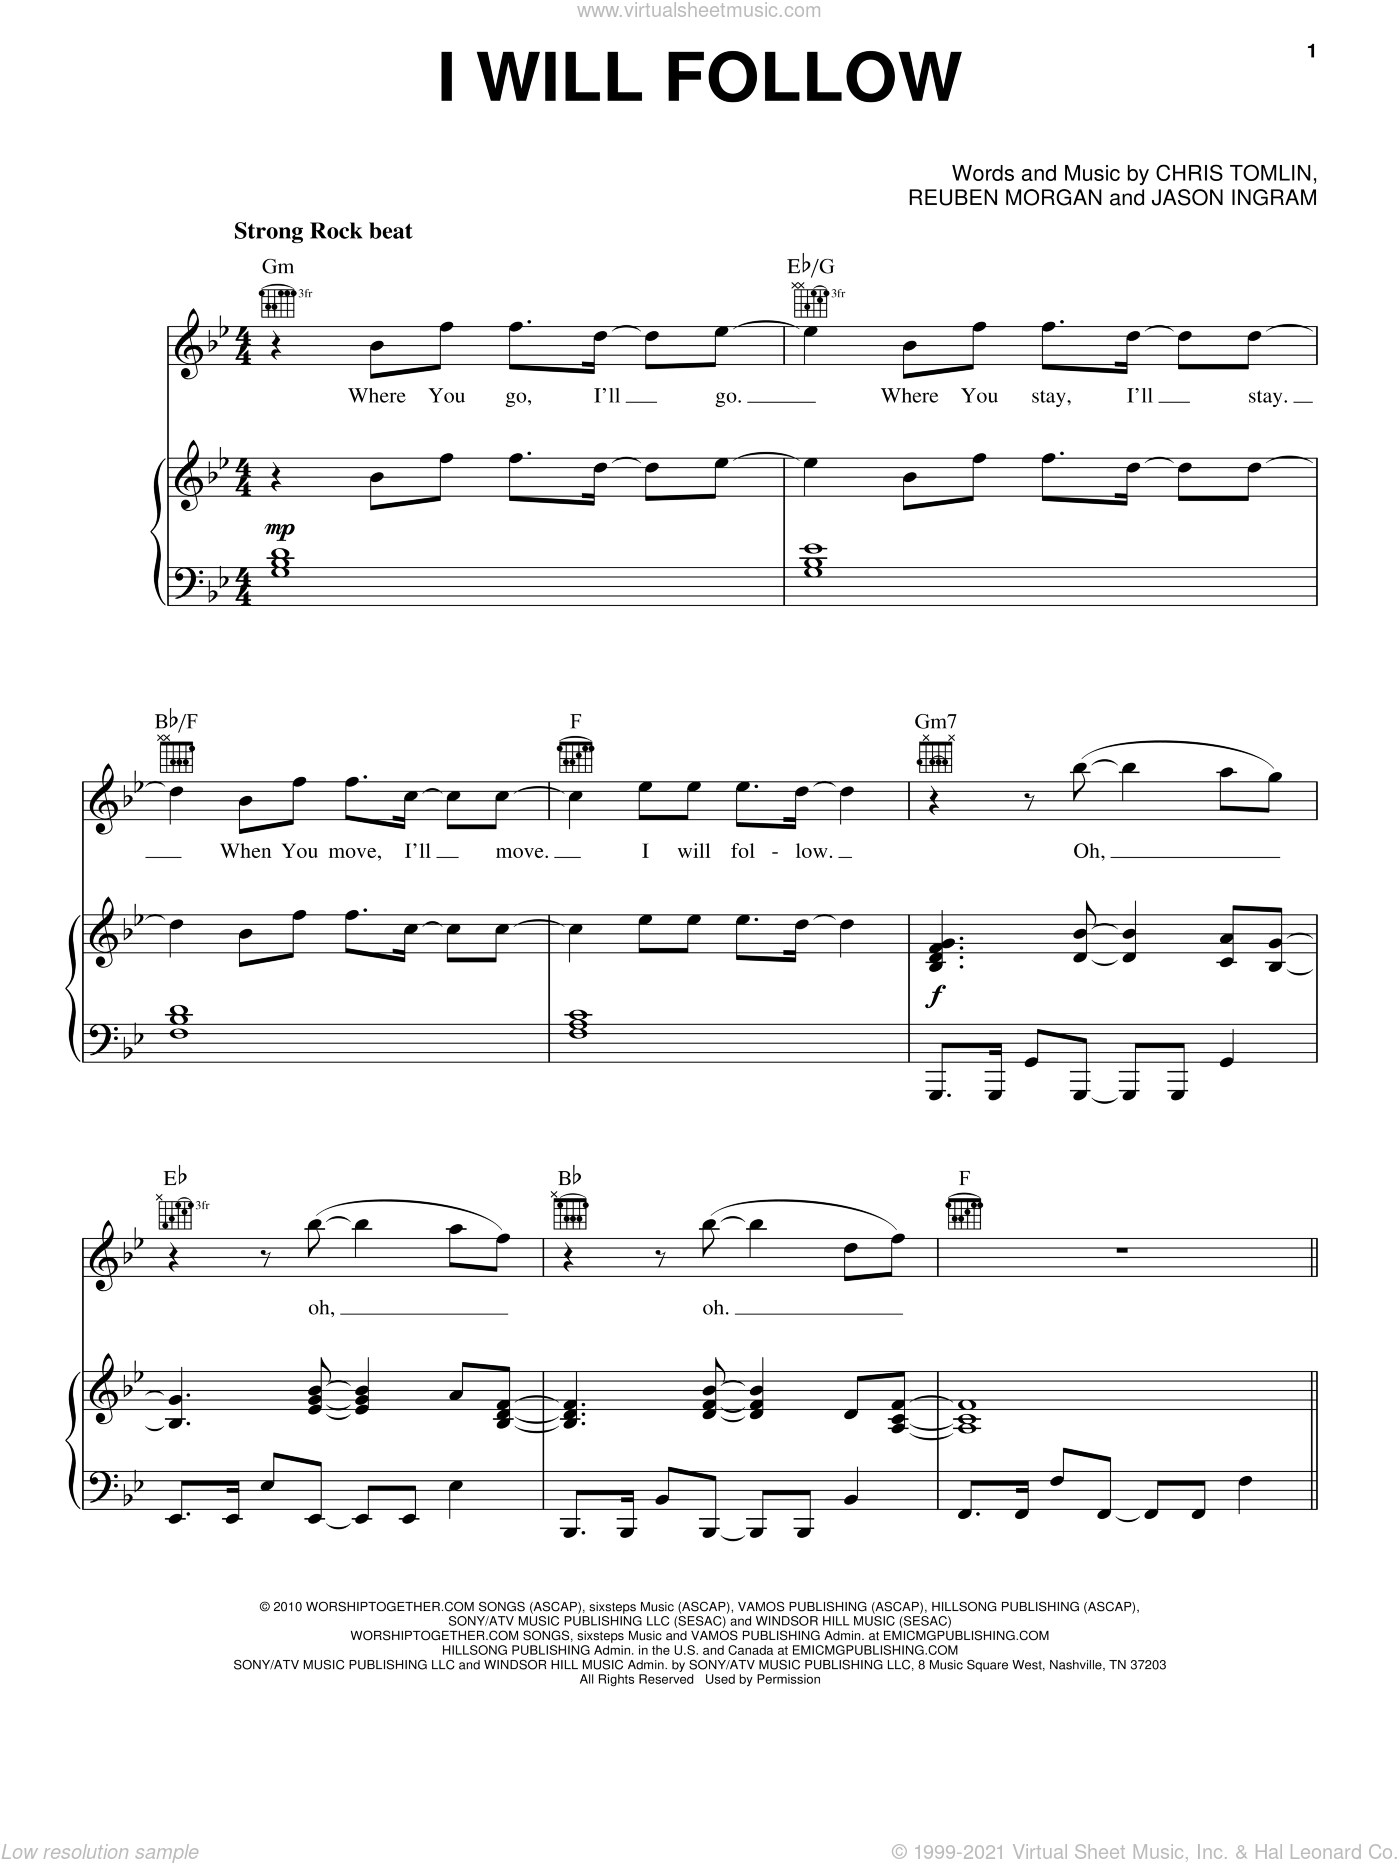 I Will Follow sheet music for voice, piano or guitar by Reuben Morgan